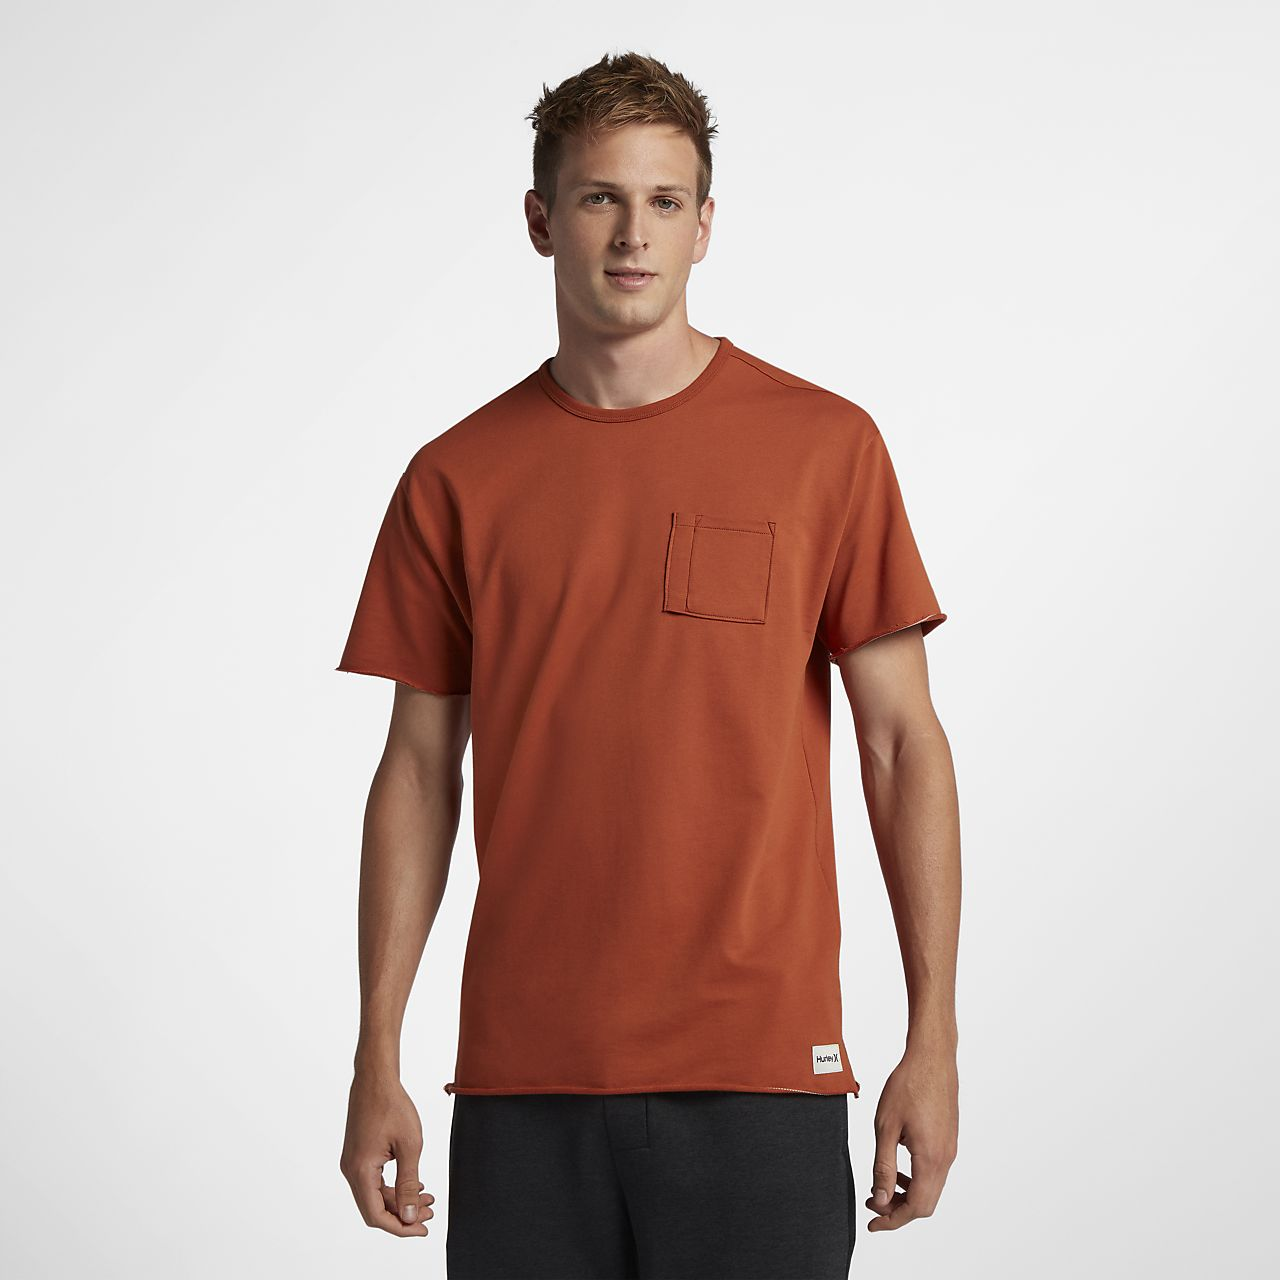 T-shirt Hurley L7 Pocket Crew - Uomo